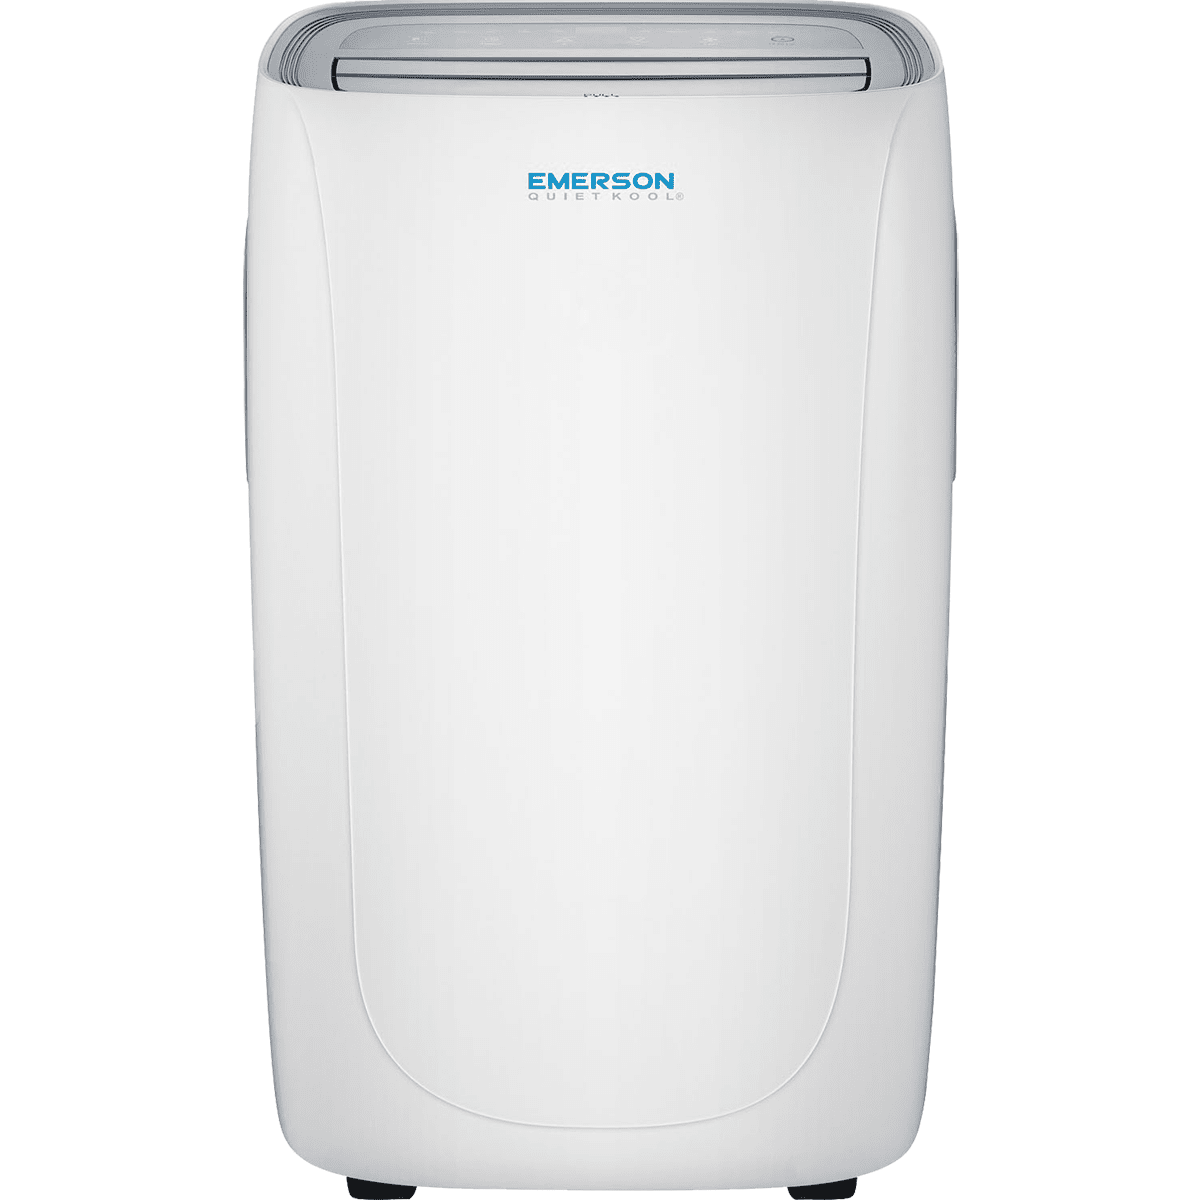 emerson quiet cool 14,000 btu portable air conditioner review